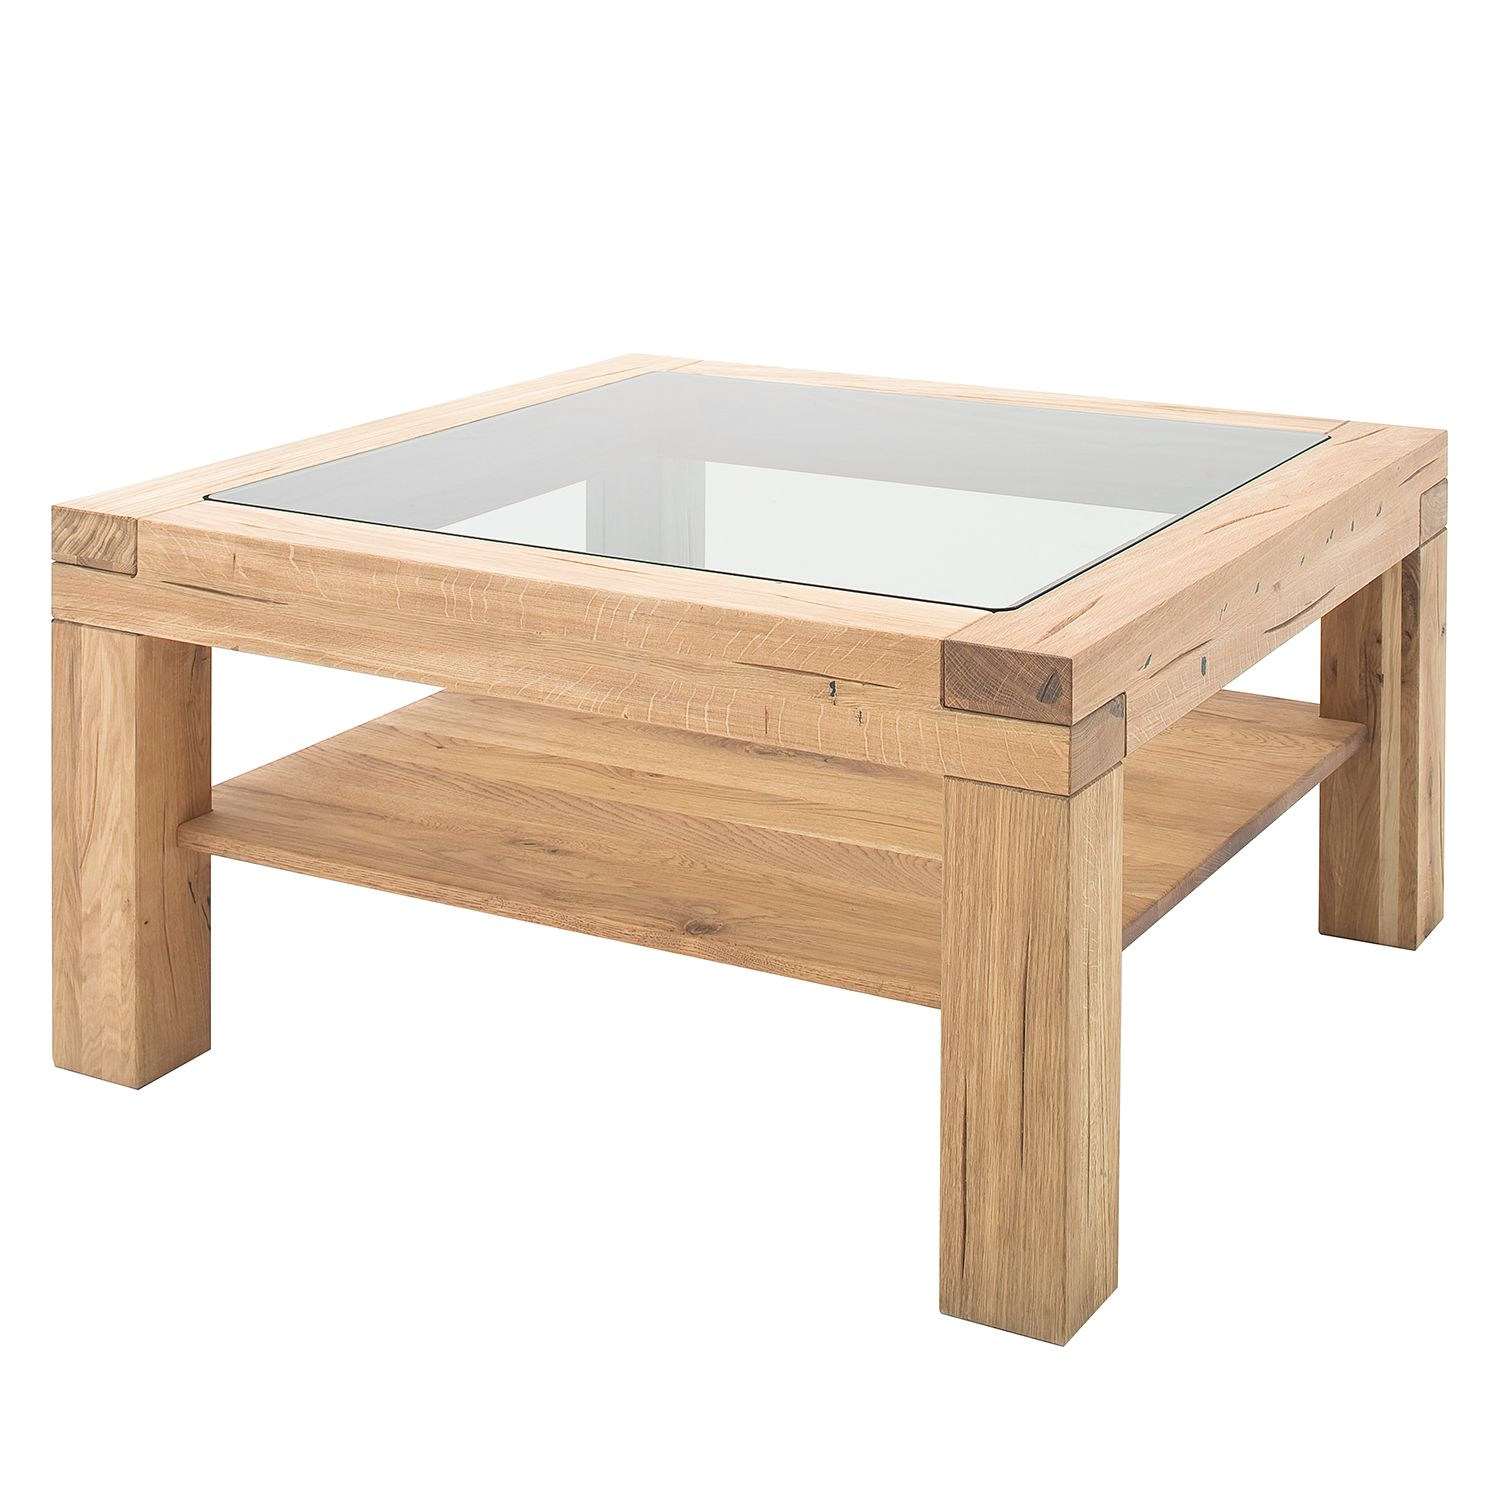 Table basse Kaster